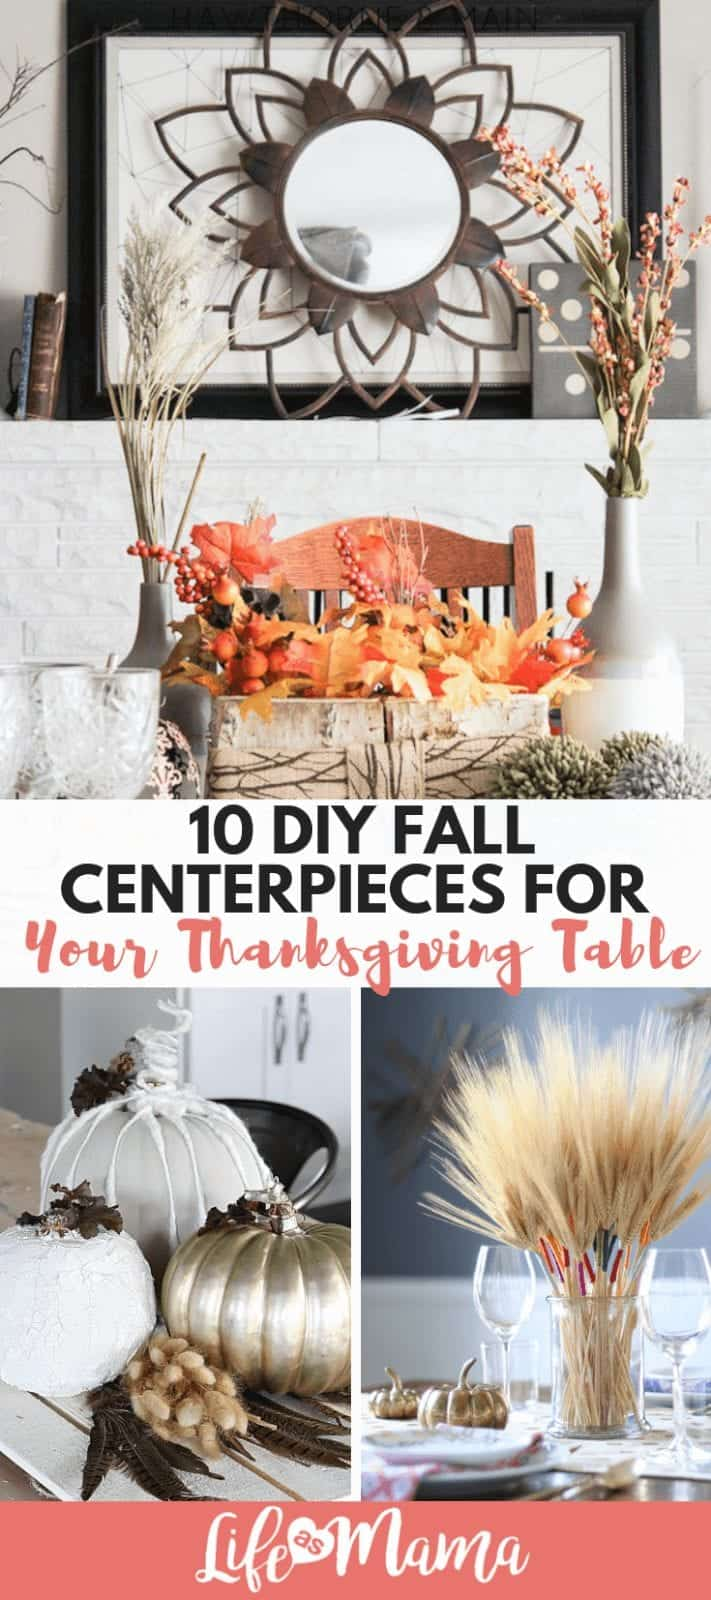 10 DIY Fall Centerpieces For Your Thanksgiving Table